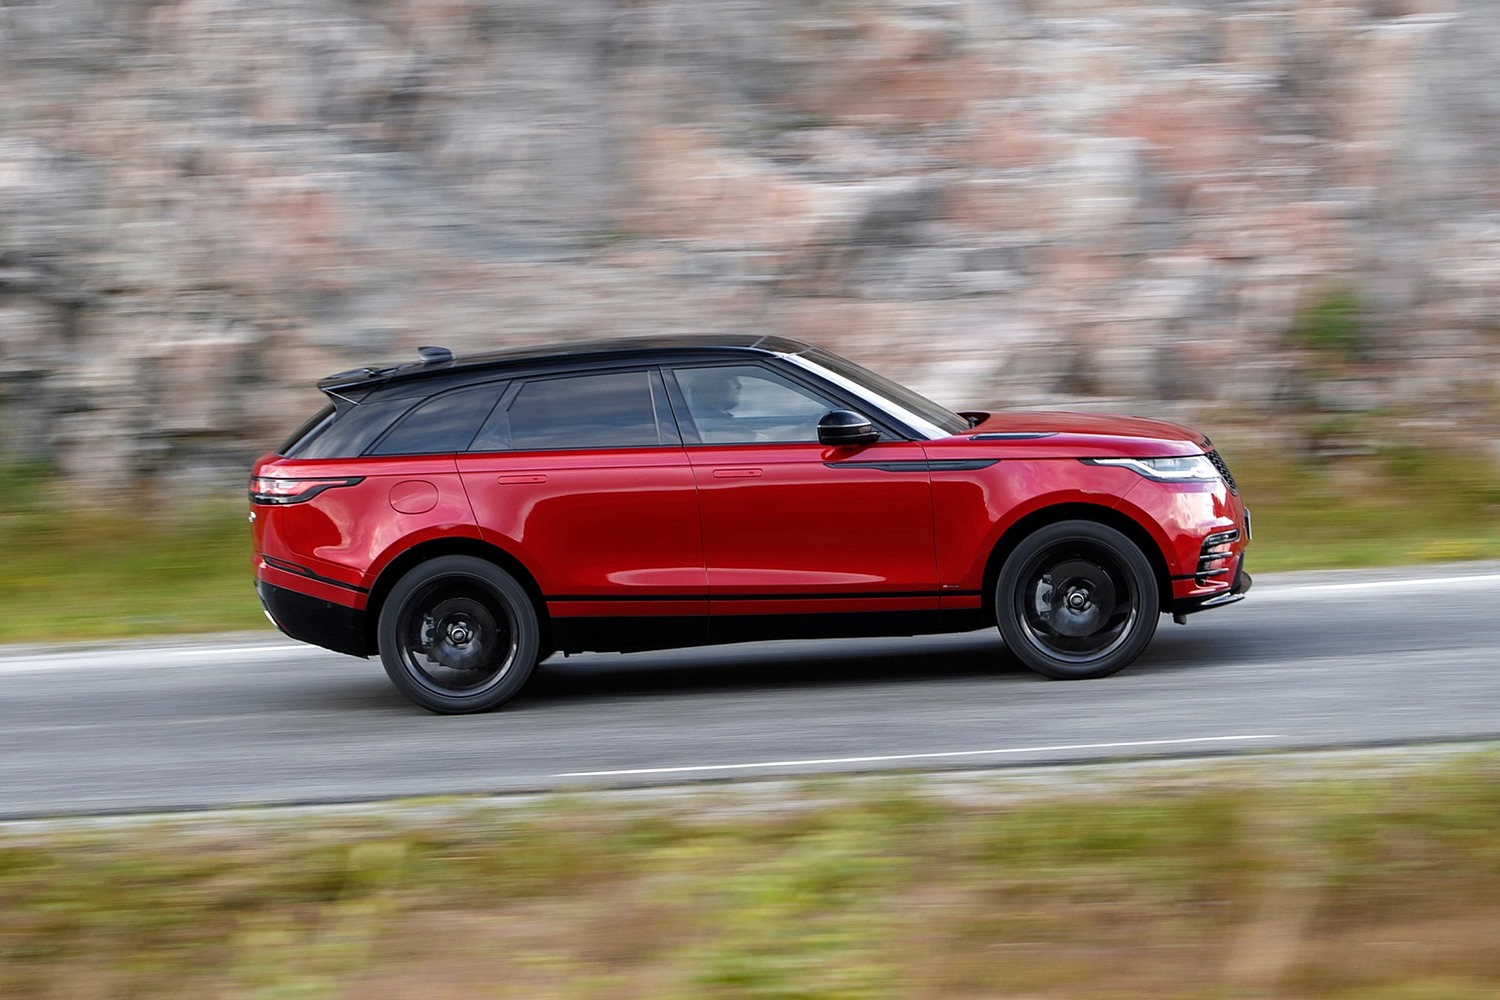 2018 Land Rover Range Rover Velar R-Dynamic HSE 4dr SUV Profile Shown